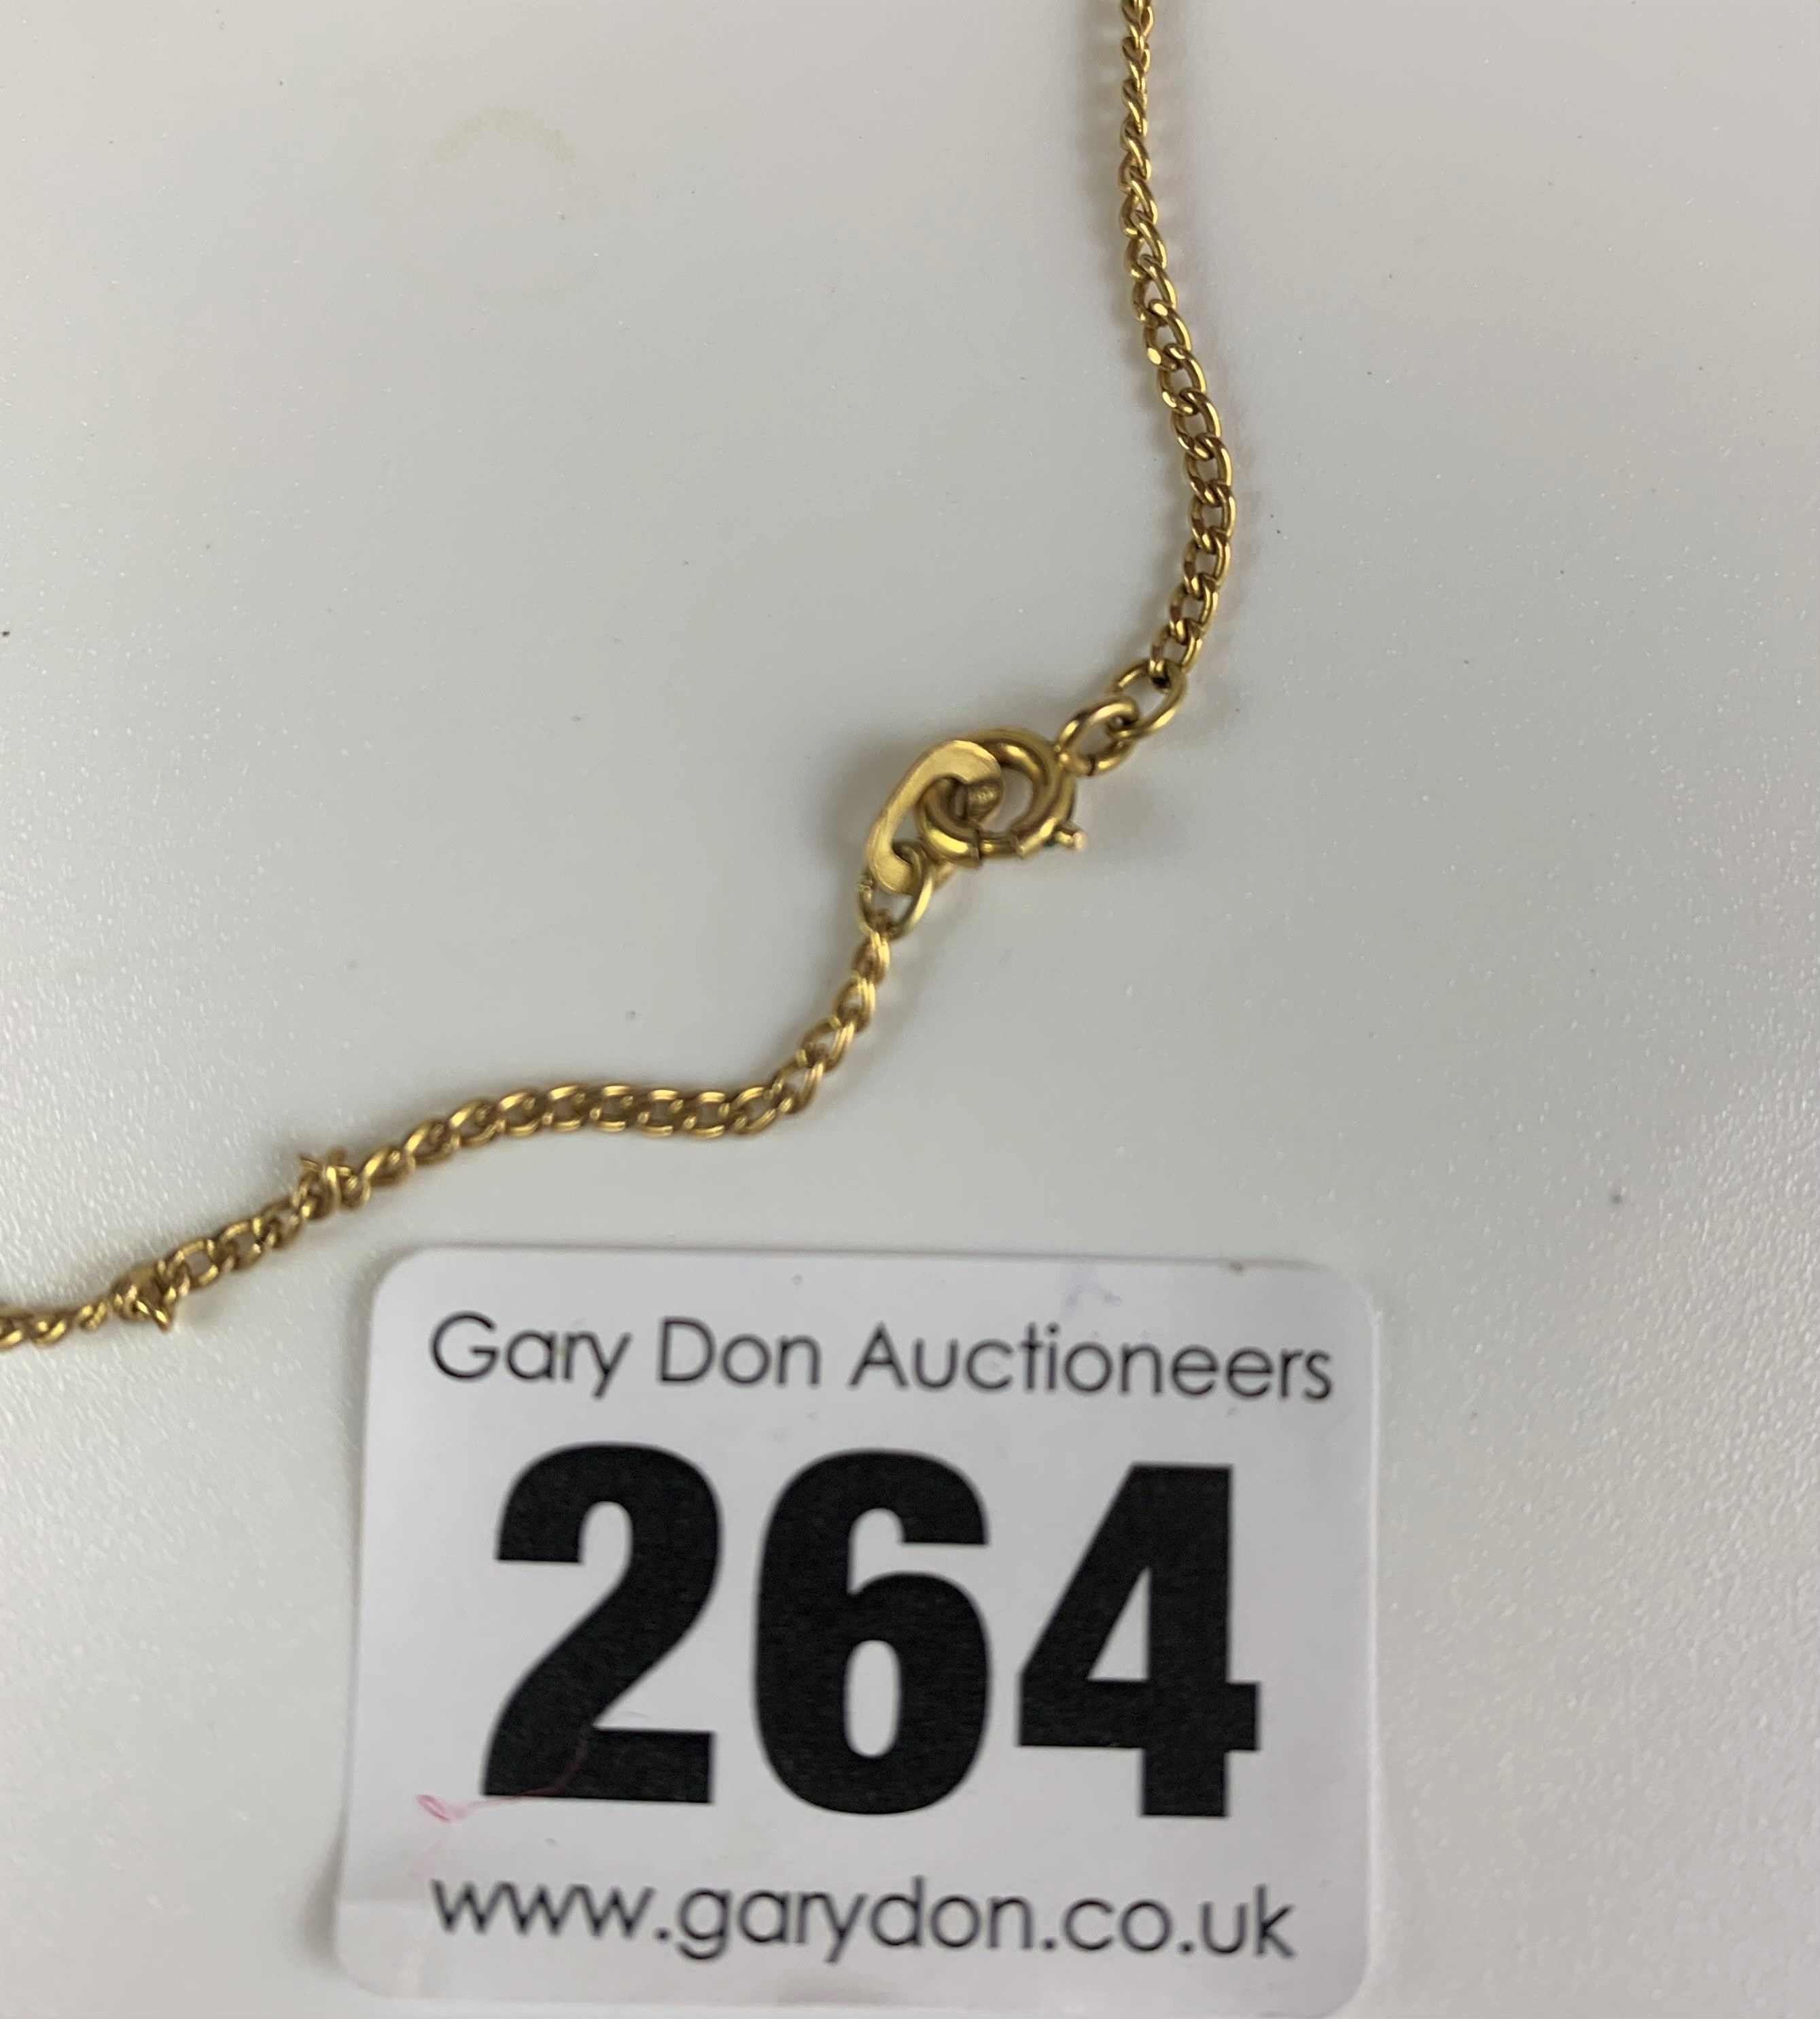 """9k gold necklace, length 26"""" and 9k gold crucifix, length 1.5"""". Total w: 11 gms - Image 5 of 5"""